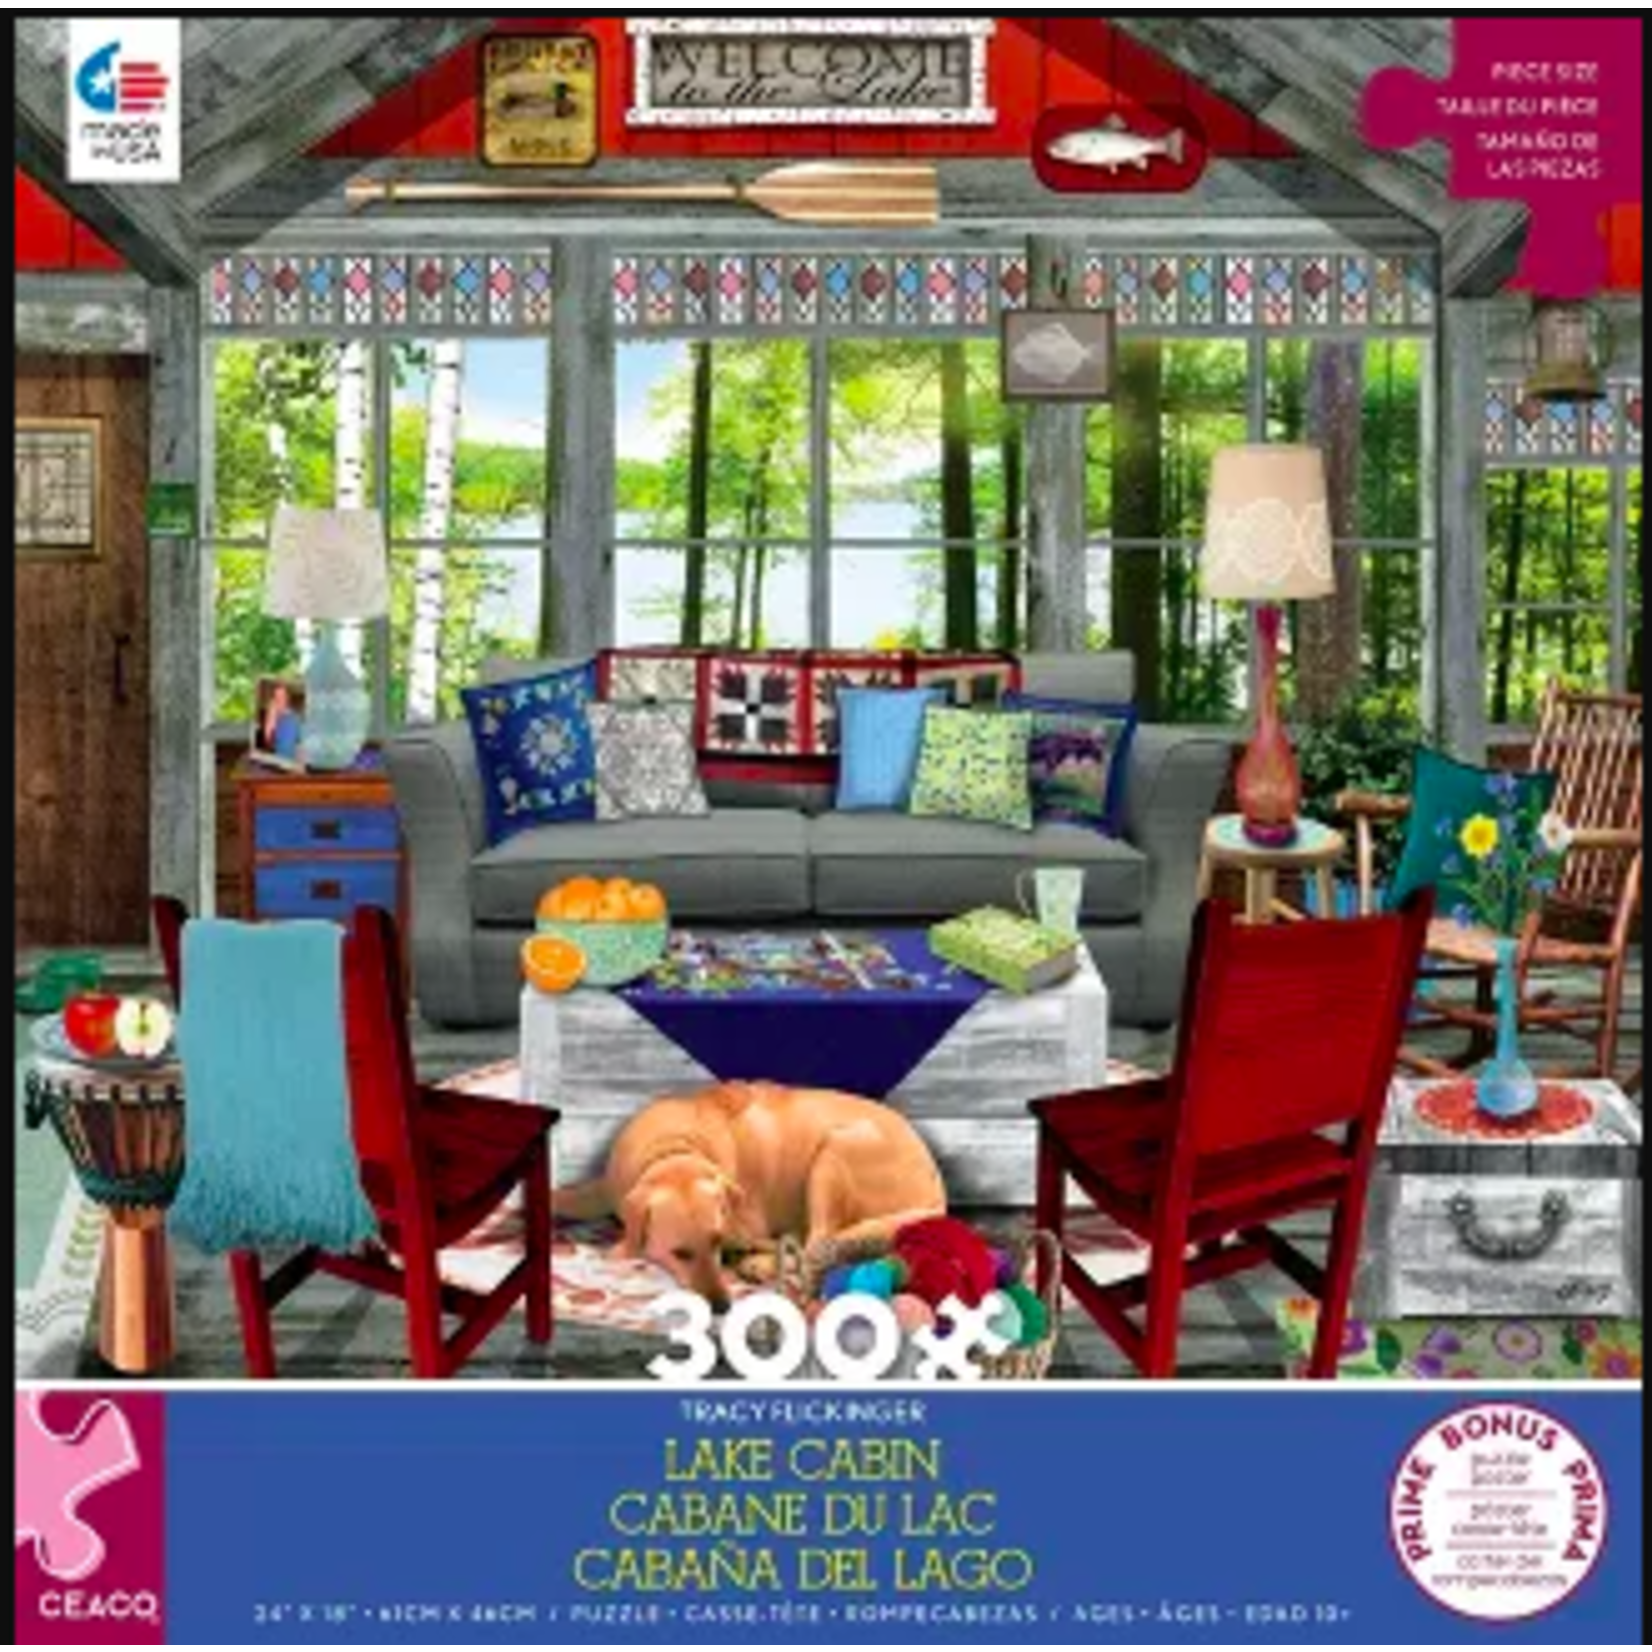 Ceaco Tracy Flickinger Lake Cabin (300 pieces)